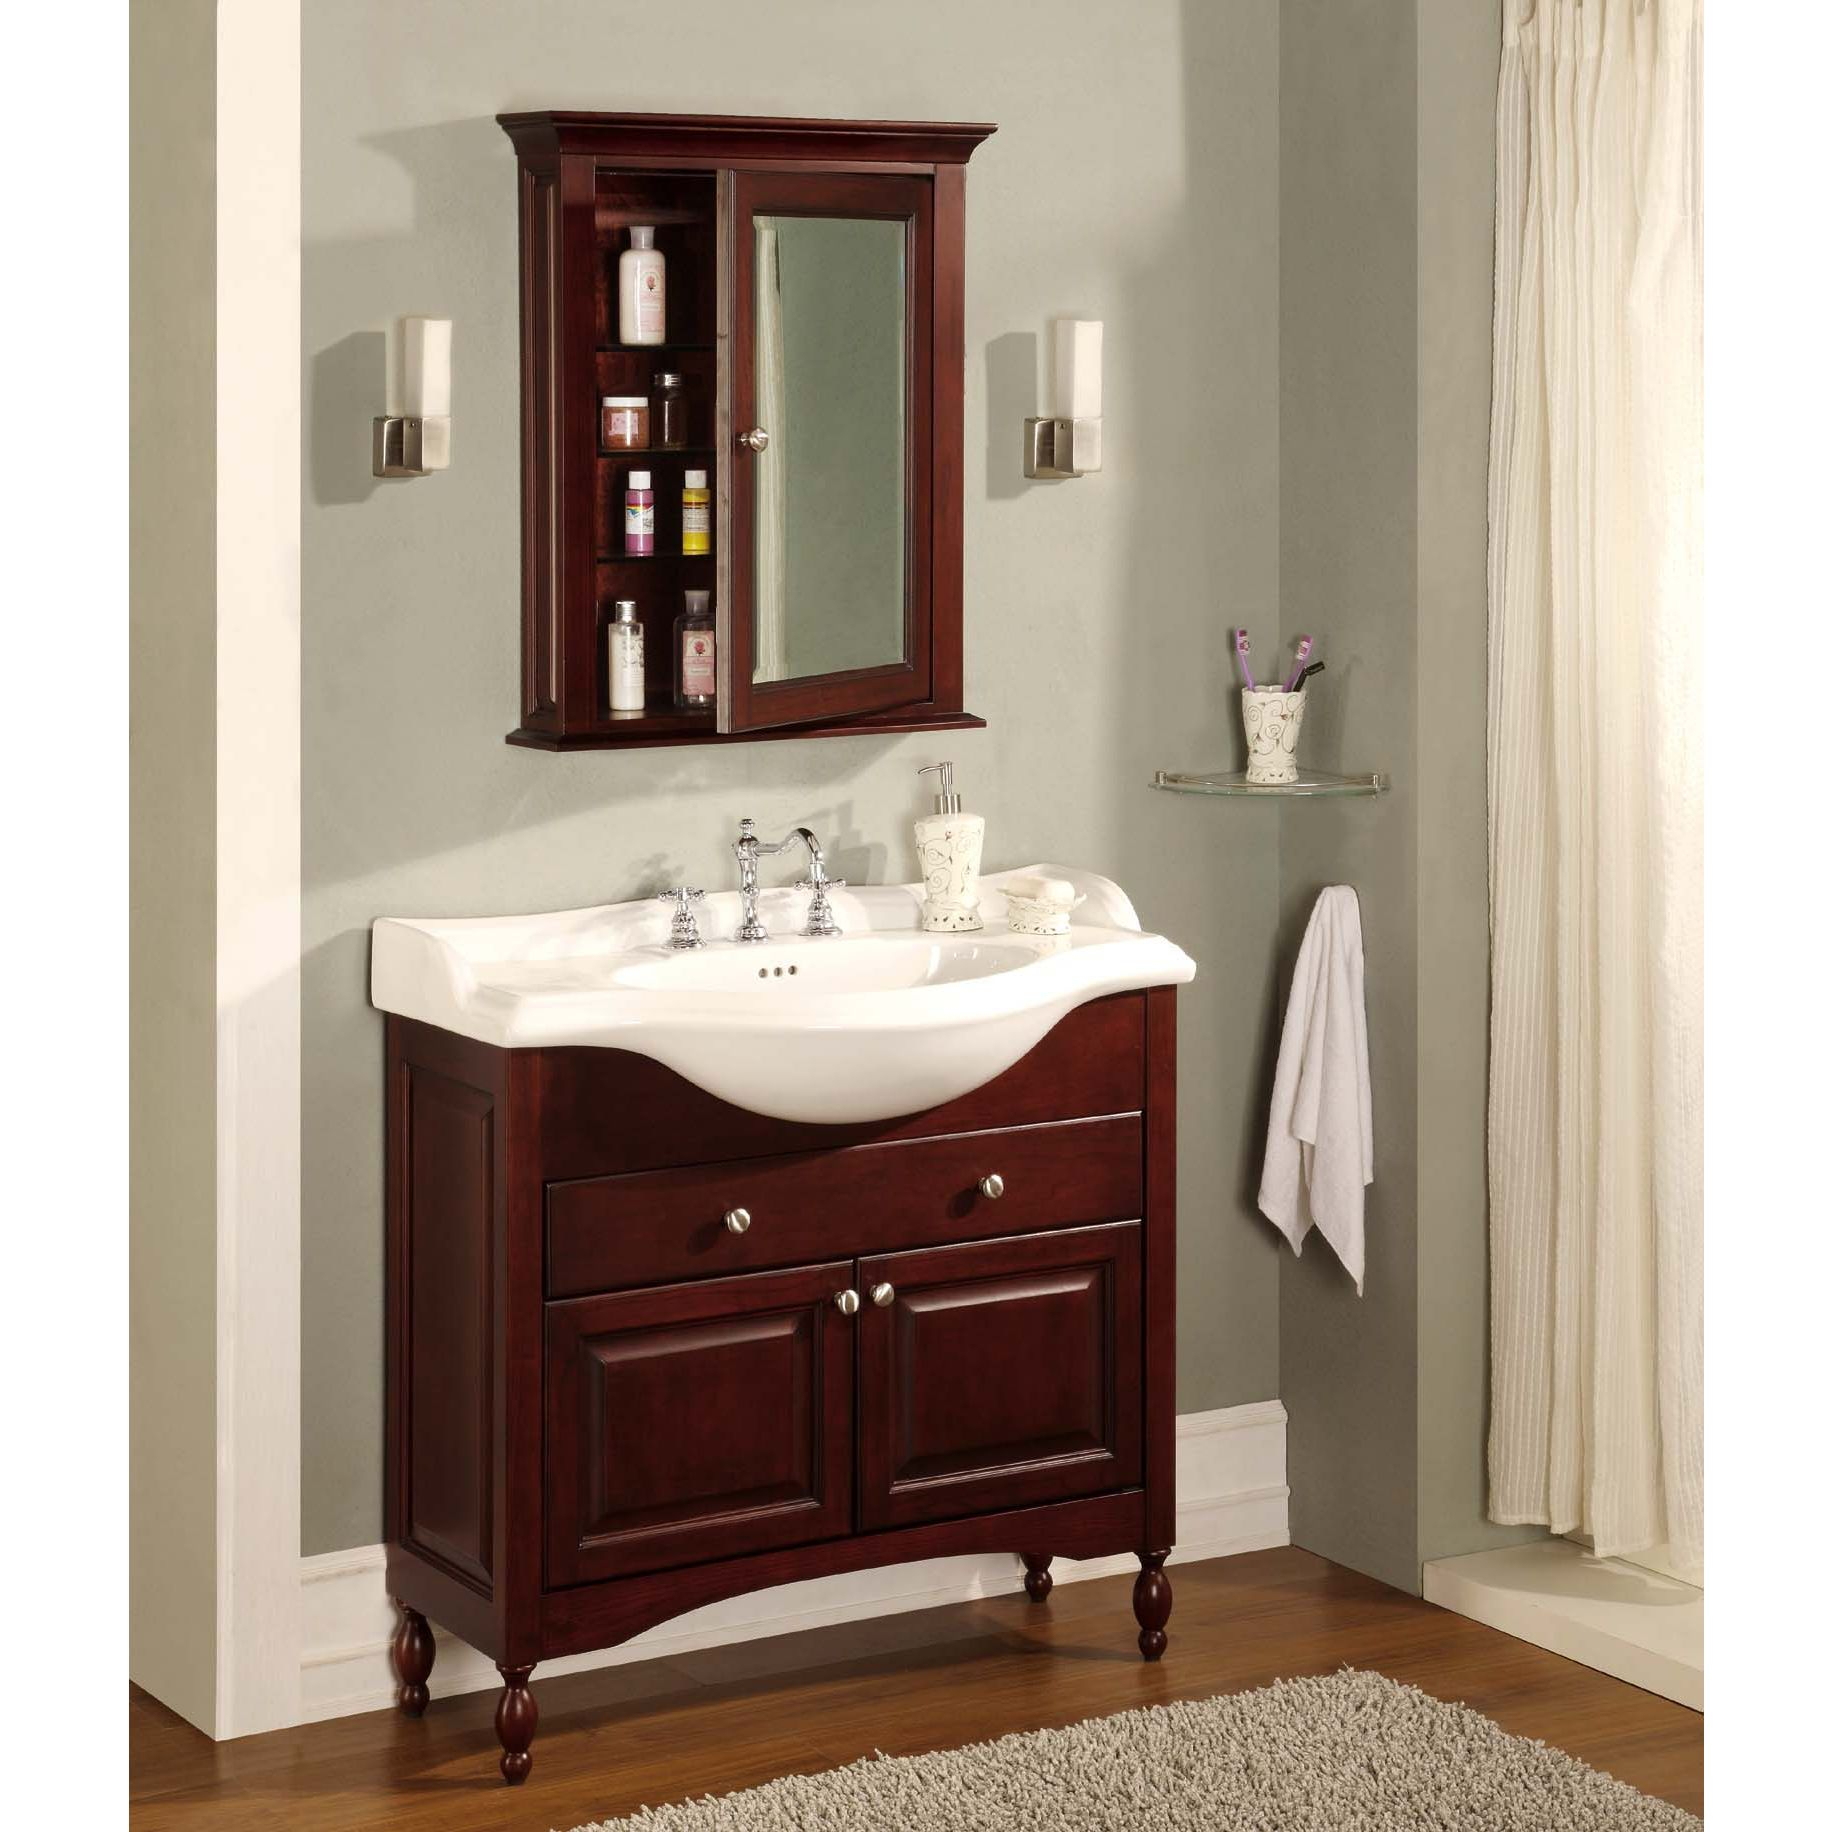 "Empire Industries Windsor 26"" 30"" 34"" Or 38"" Narrow Depth Enchanting Narrow Depth Bathroom Vanity Design Inspiration"